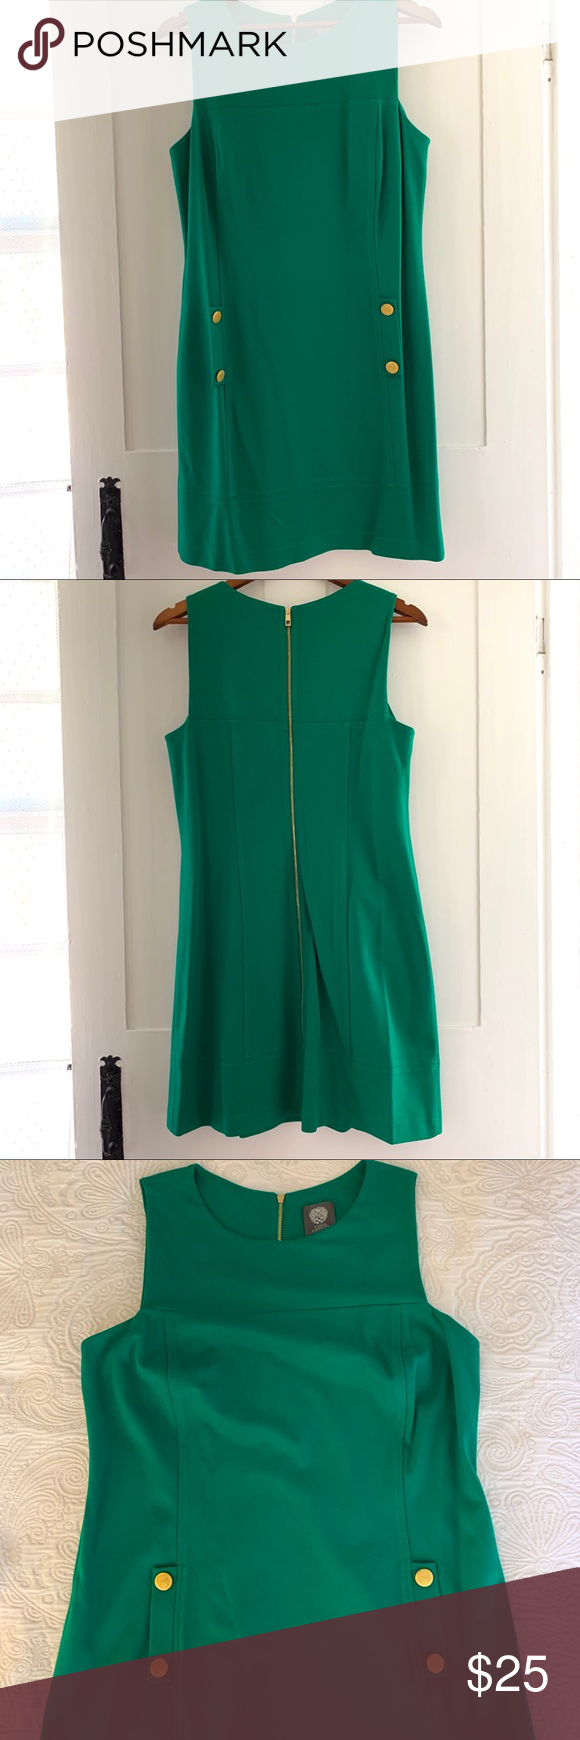 Vince Camuto Kelly Green Dress With Gold Details Kelly Green Dresses Green Dress Flattering Fashion [ 1740 x 580 Pixel ]